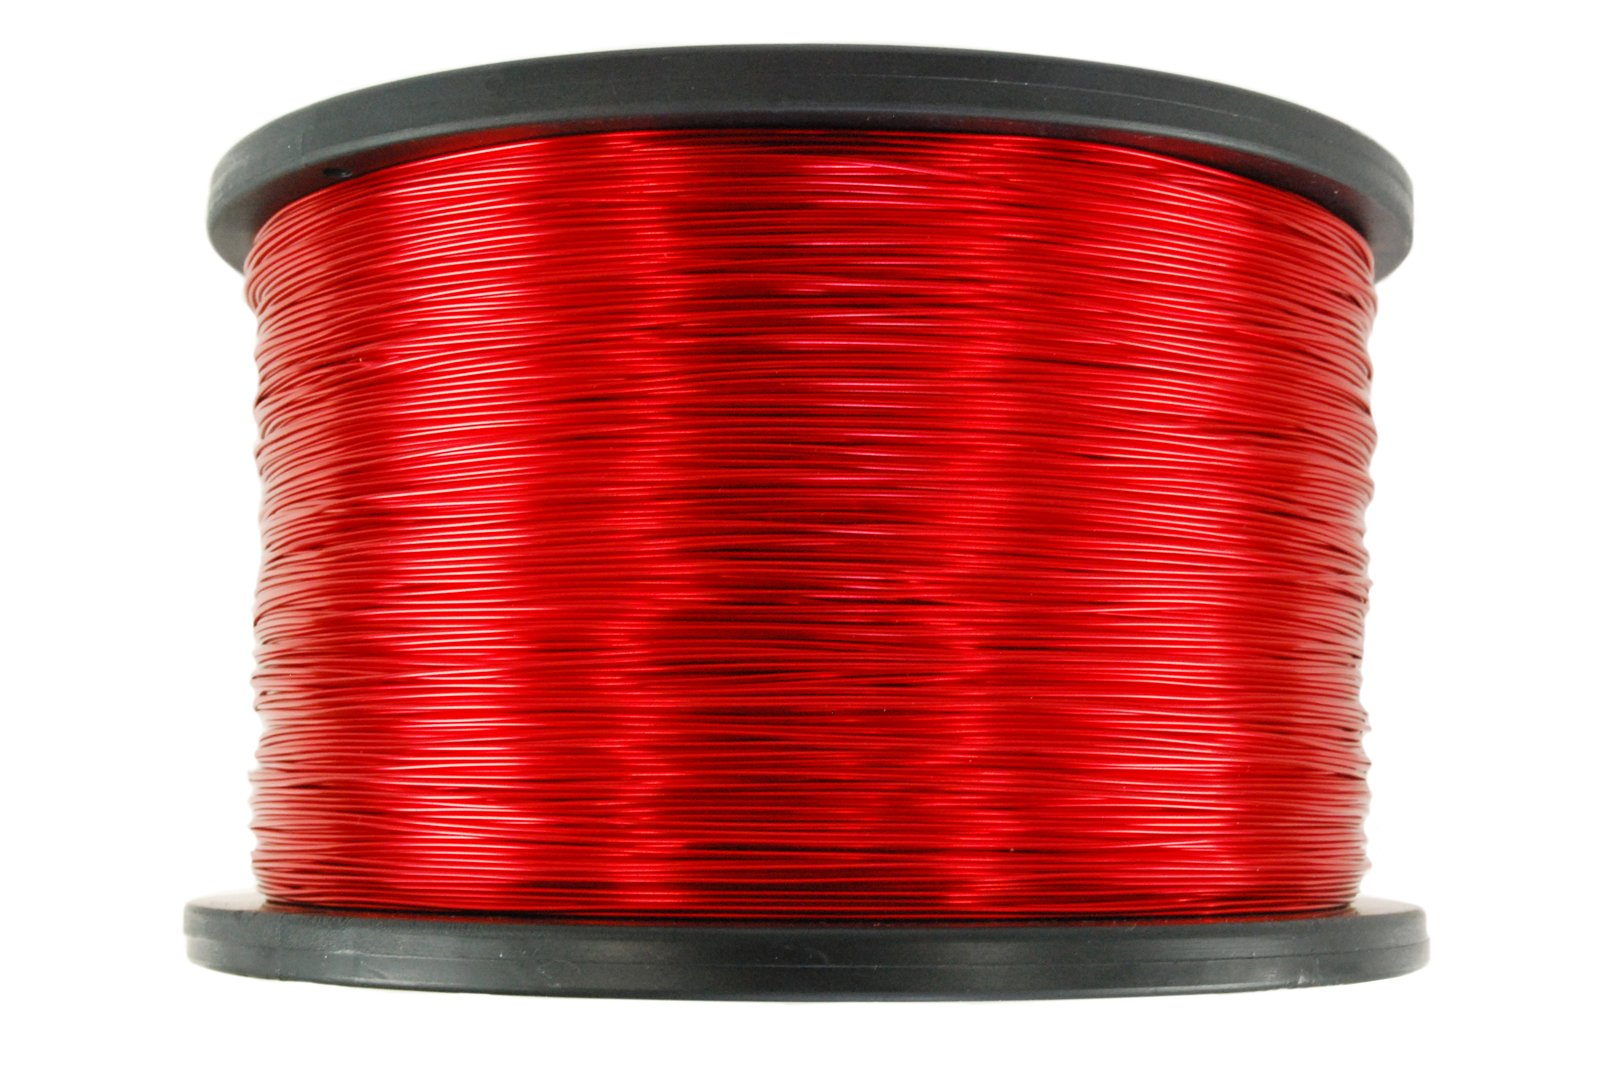 TEMCo 20 AWG Copper Magnet Wire - 10 lb 3146 ft